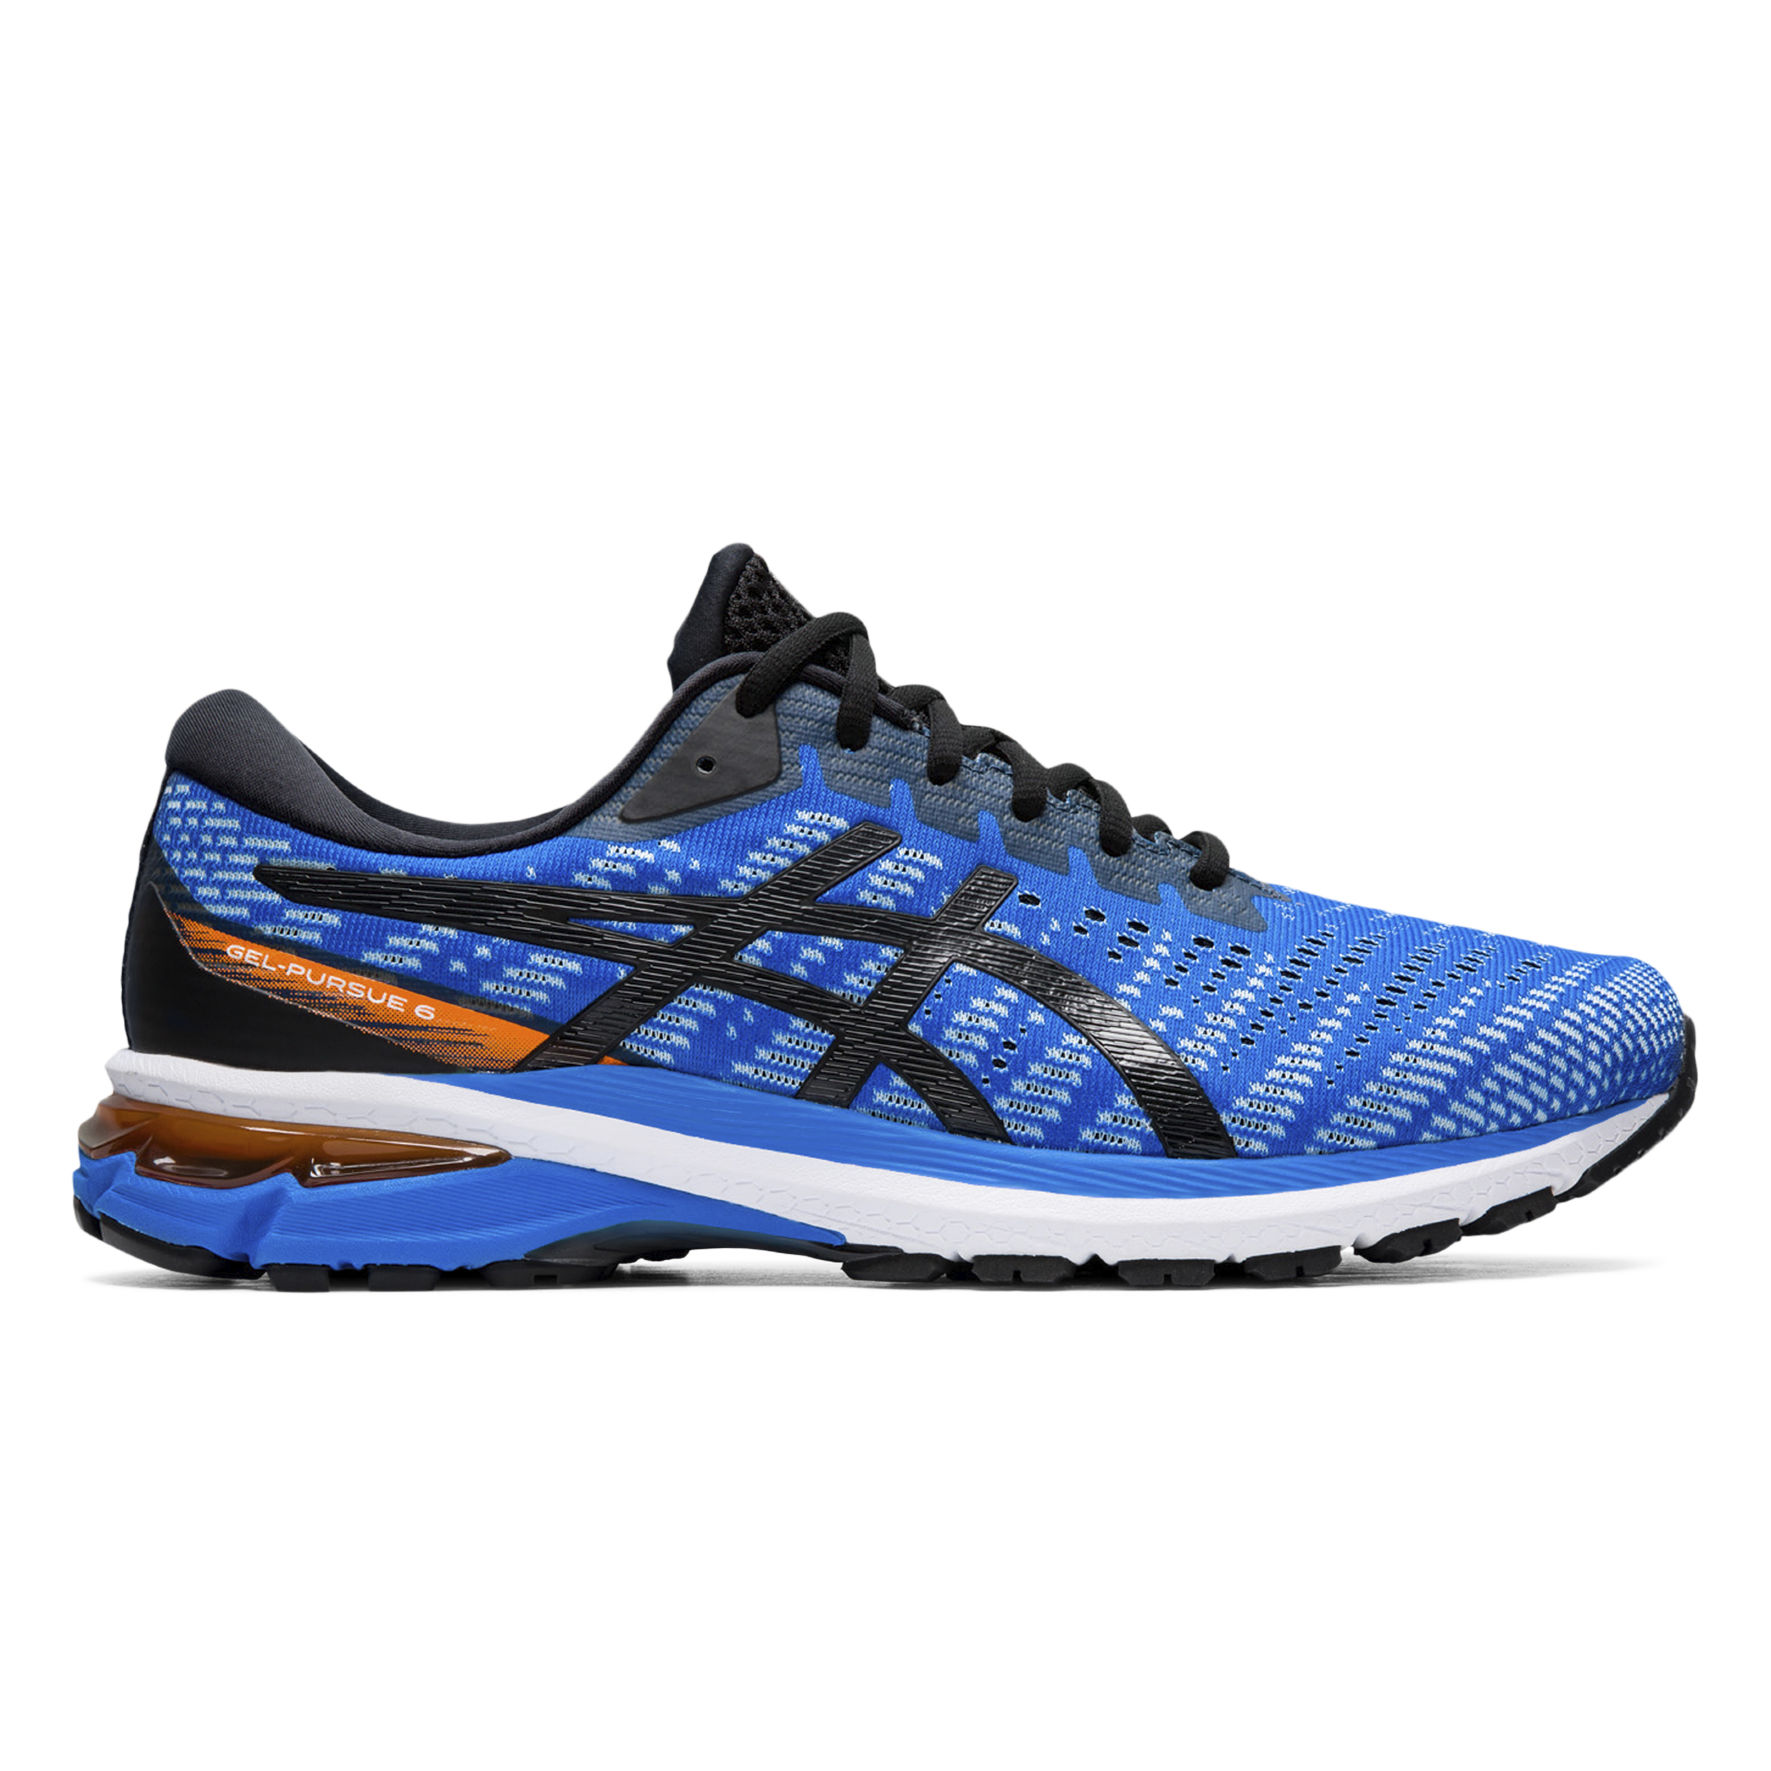 Asics Gel-Pursue 6 in Blau